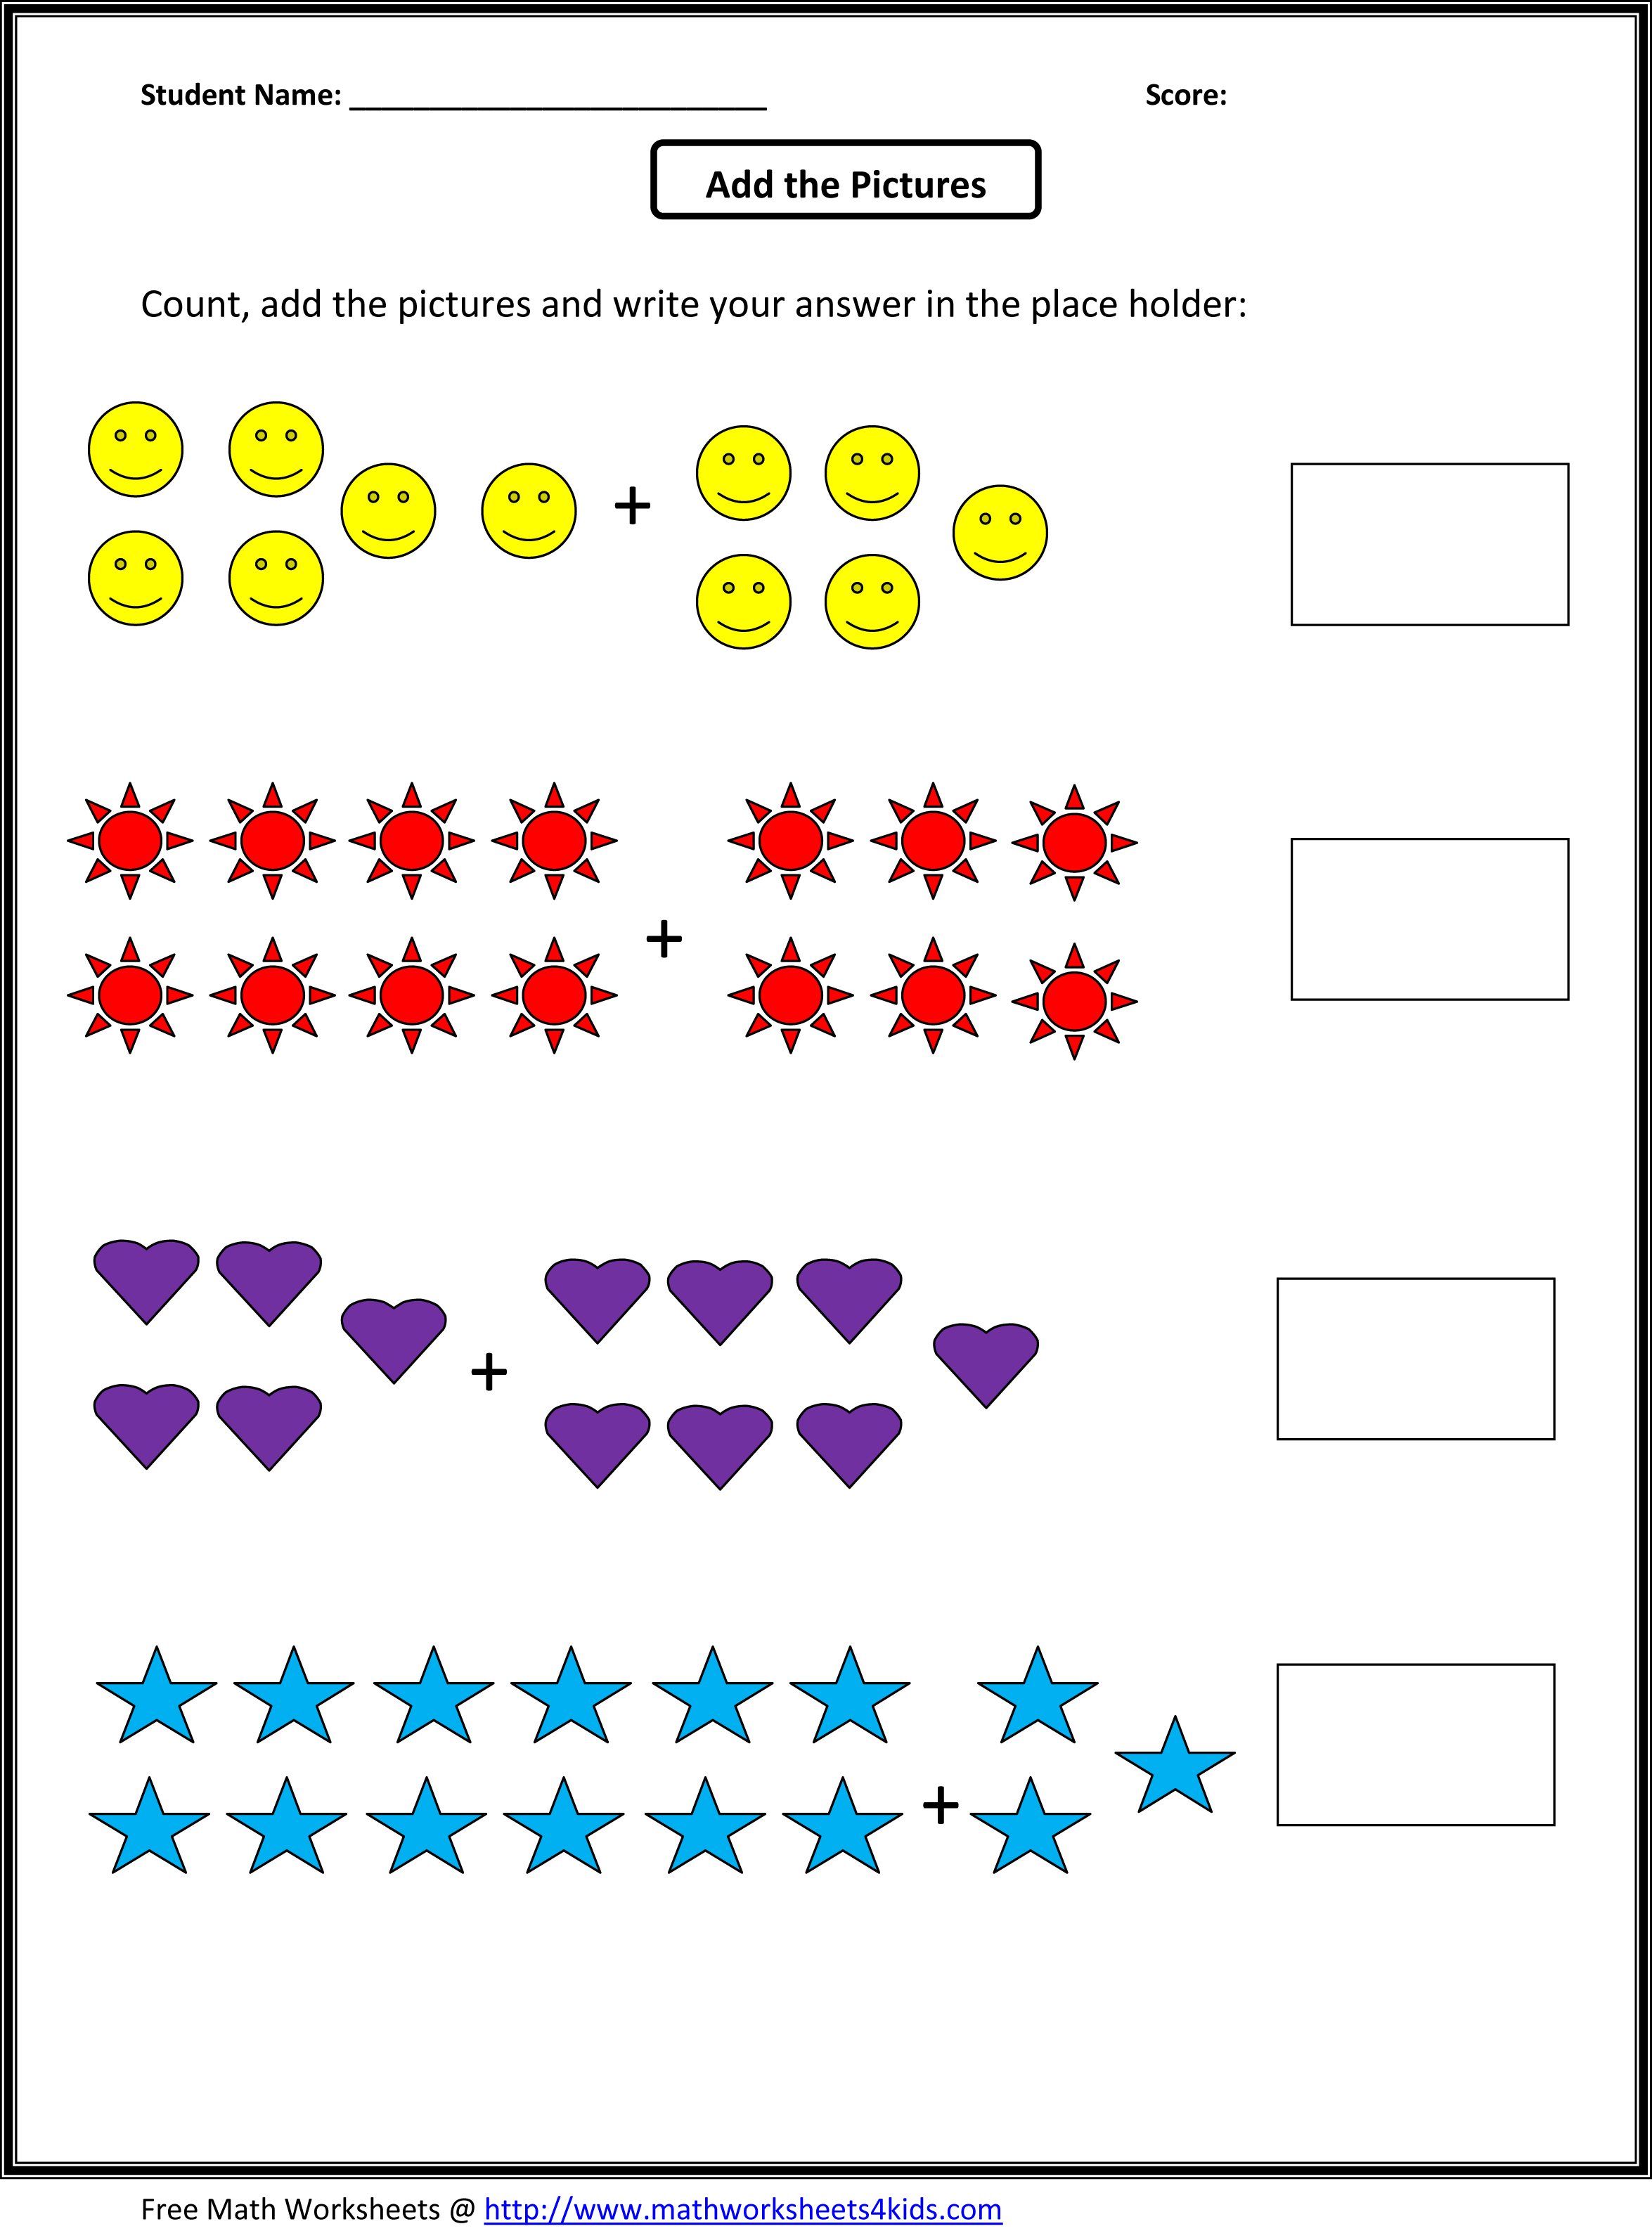 Aldiablosus  Pleasant Grade  Maths Worksheet  Reocurent With Extraordinary Math Worksheets For St Grade Free  Reocurent With Alluring Multiple Pivot Tables On One Worksheet Also Year One Literacy Worksheets In Addition Ort Worksheets And Maths Worksheet Wizard As Well As Std  Maths Worksheets Additionally Ascending Order Worksheet From Reocurentcom With Aldiablosus  Extraordinary Grade  Maths Worksheet  Reocurent With Alluring Math Worksheets For St Grade Free  Reocurent And Pleasant Multiple Pivot Tables On One Worksheet Also Year One Literacy Worksheets In Addition Ort Worksheets From Reocurentcom